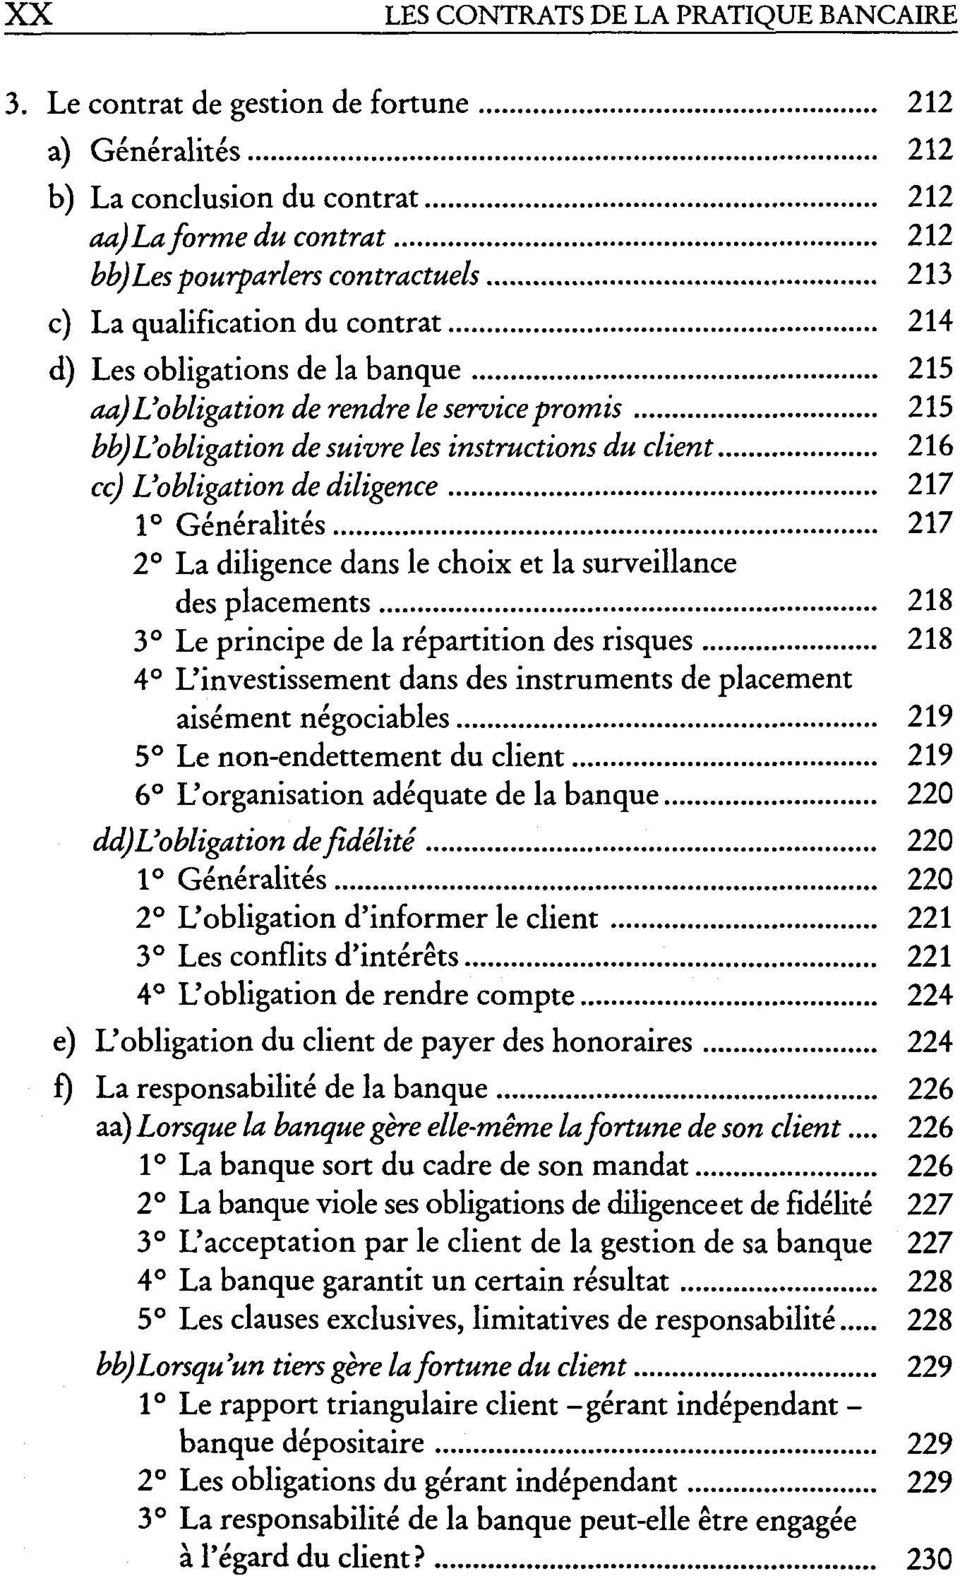 obligations de la banque 215 aa) L'obligation de rendre le service promis 215 bb)l'obligation de suivre les instructions du client 216 cc) L'obligation de diligence 217 1 Generalites 217 2 La